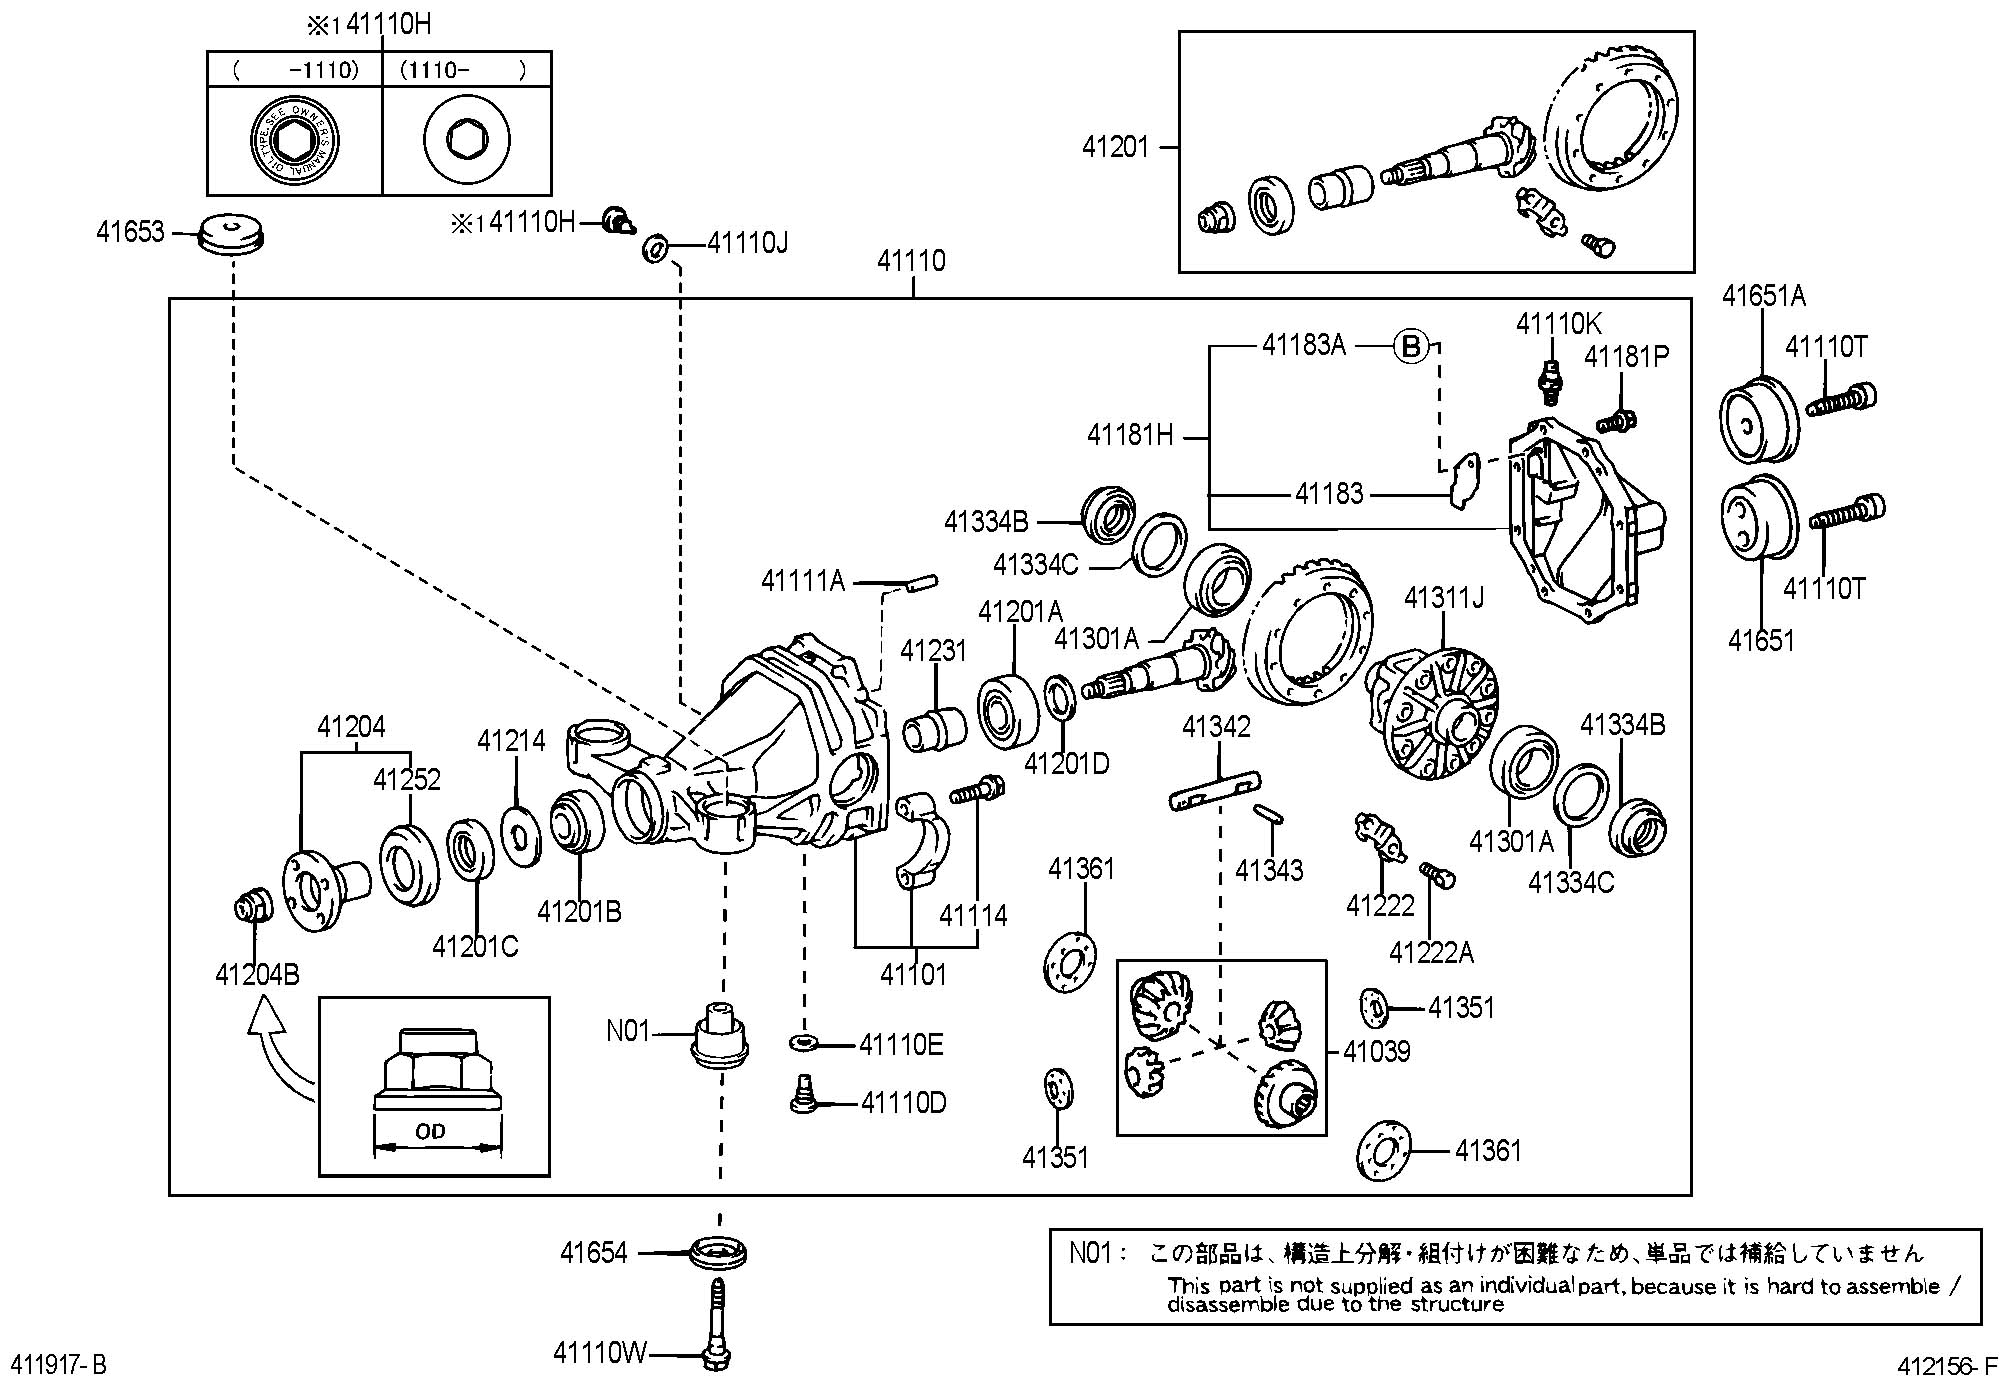 cadillac cts door handle diagram